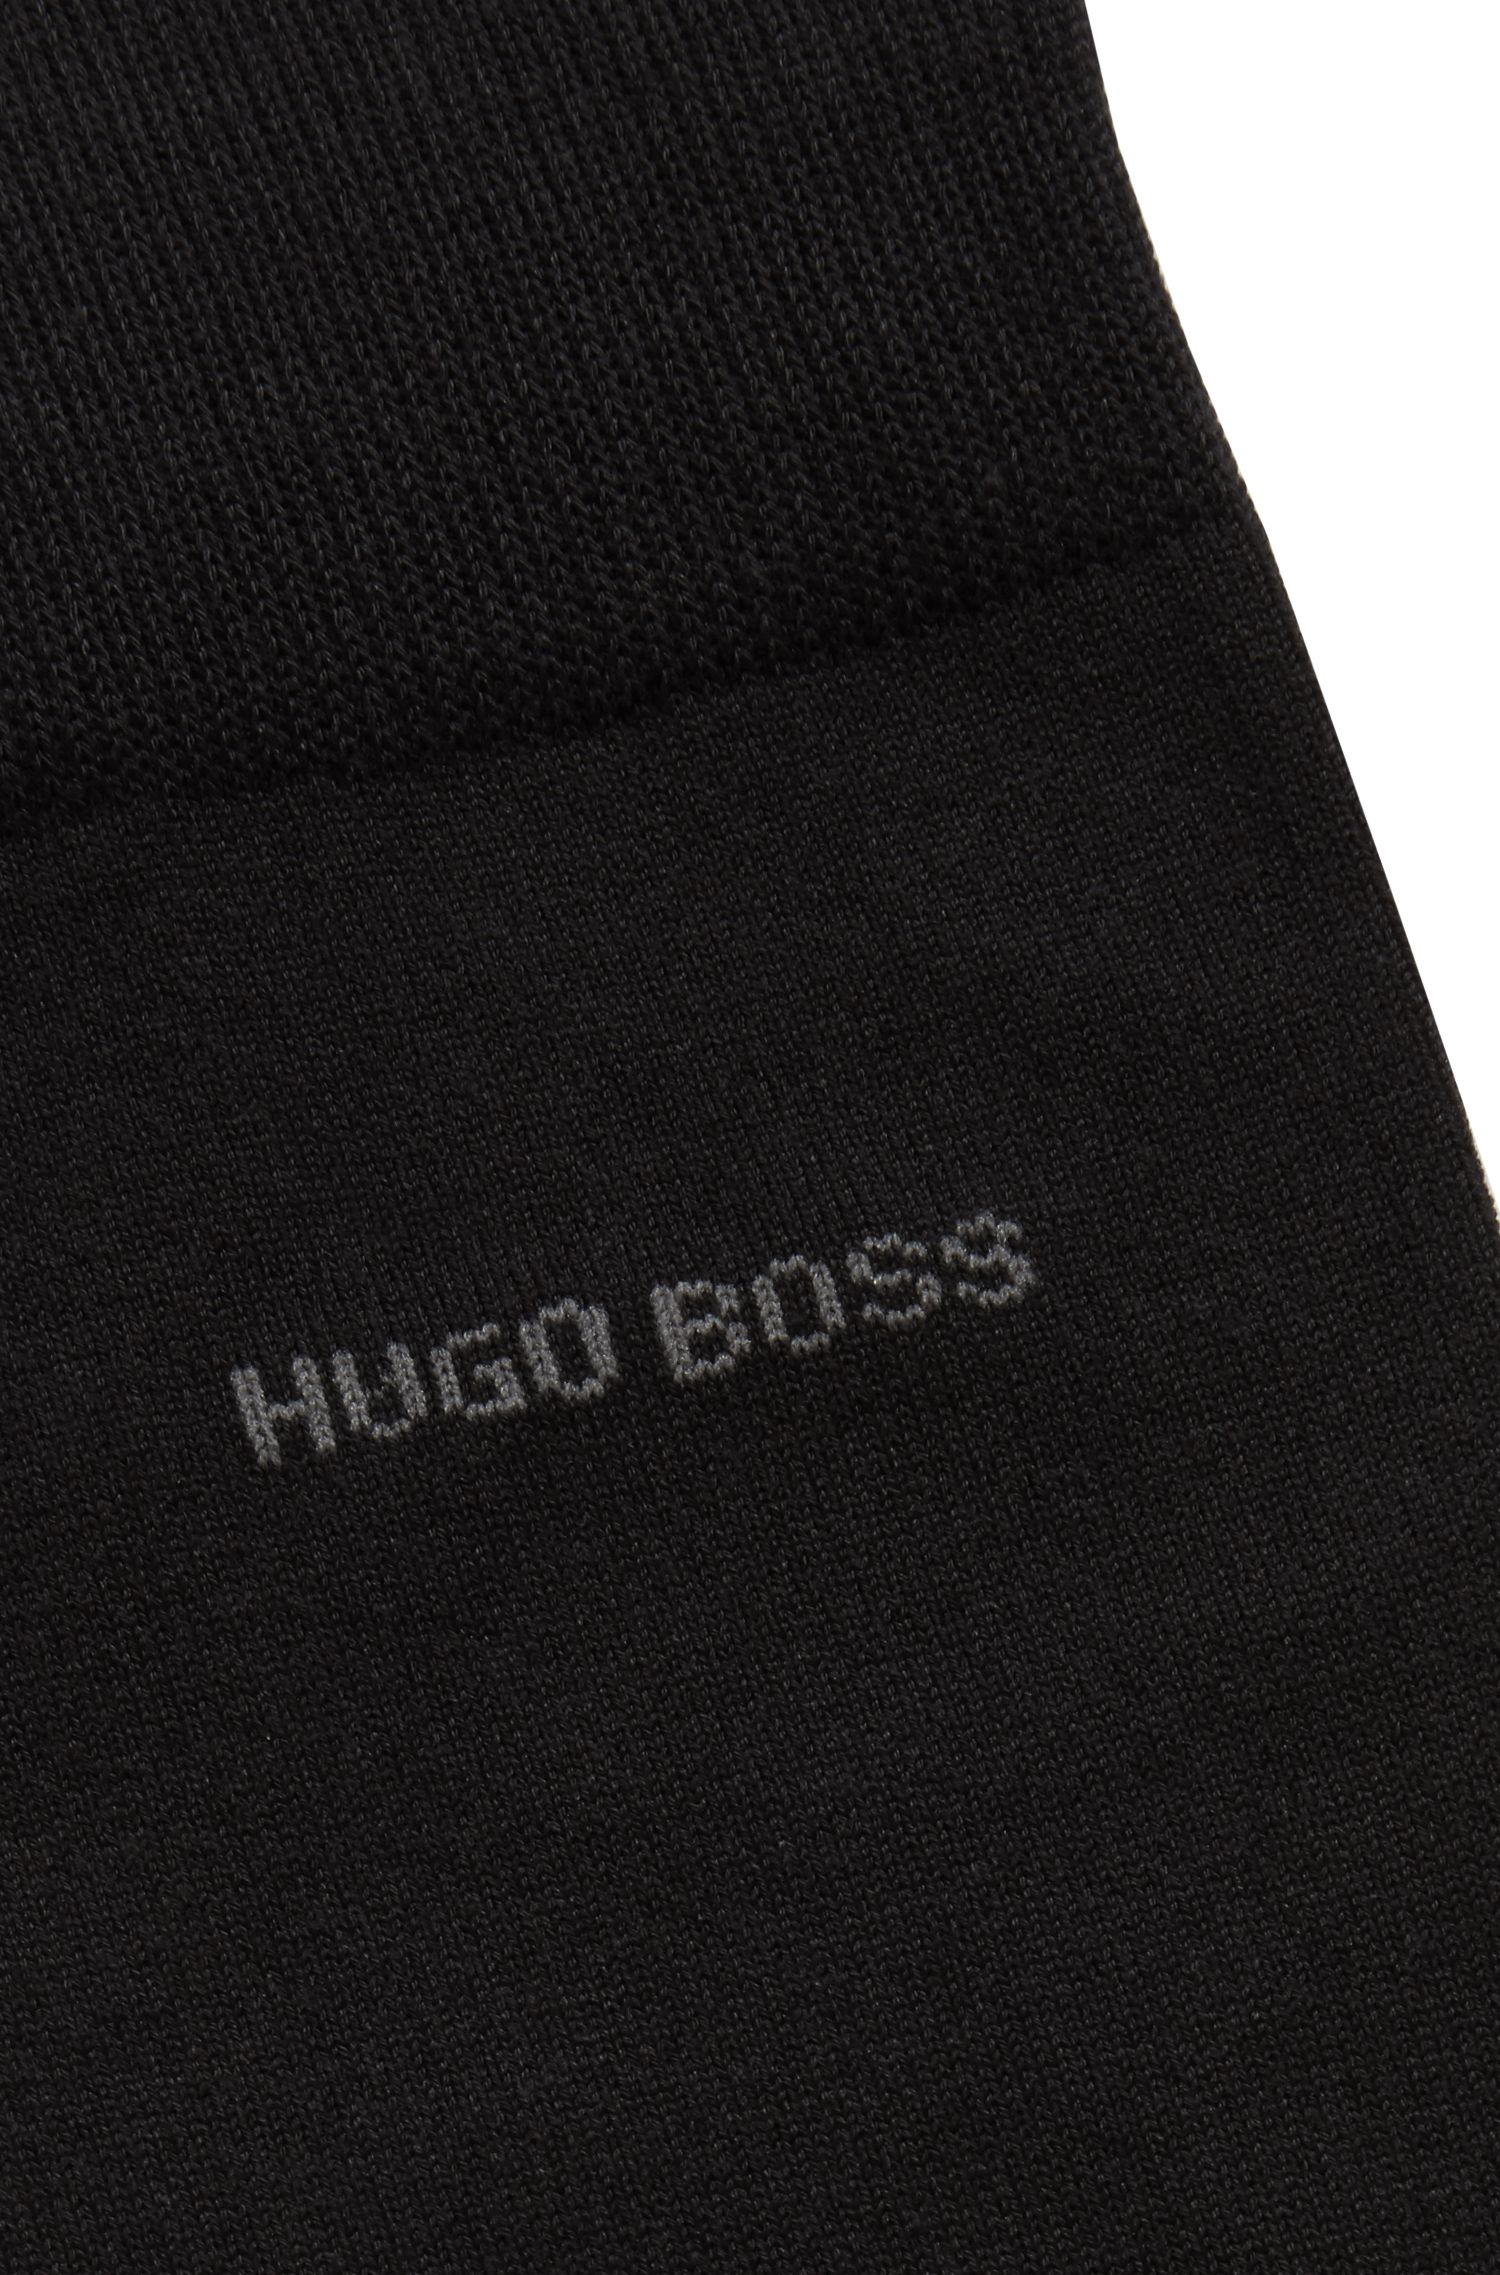 Business socks in an organic Egyptian-cotton blend, Black